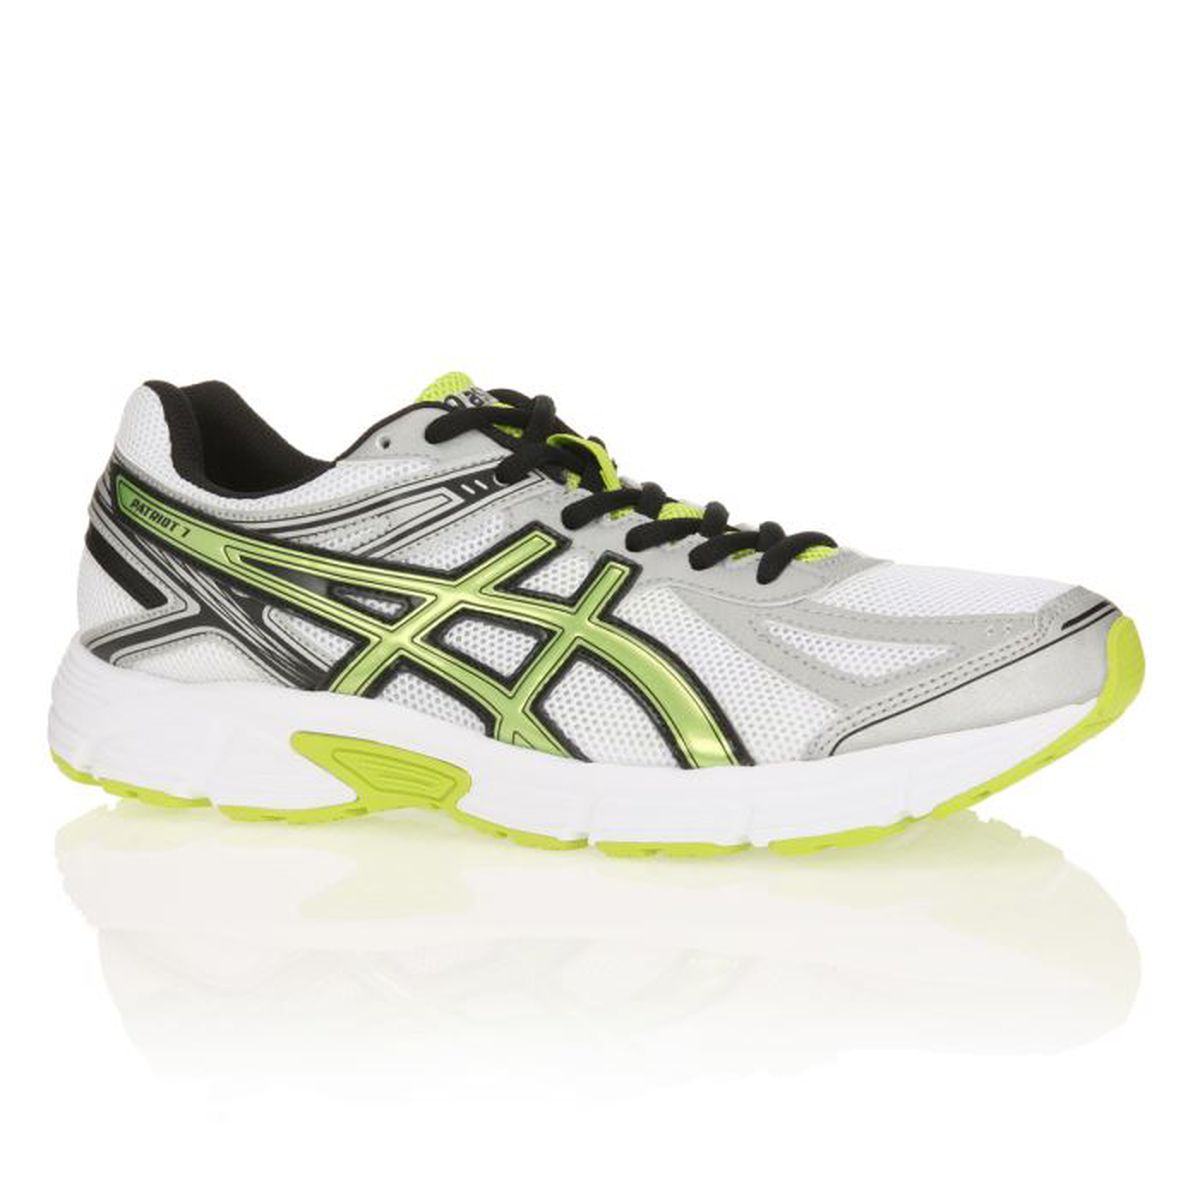 asics chaussures de running patriot 7 homme prix pas cher cdiscount. Black Bedroom Furniture Sets. Home Design Ideas